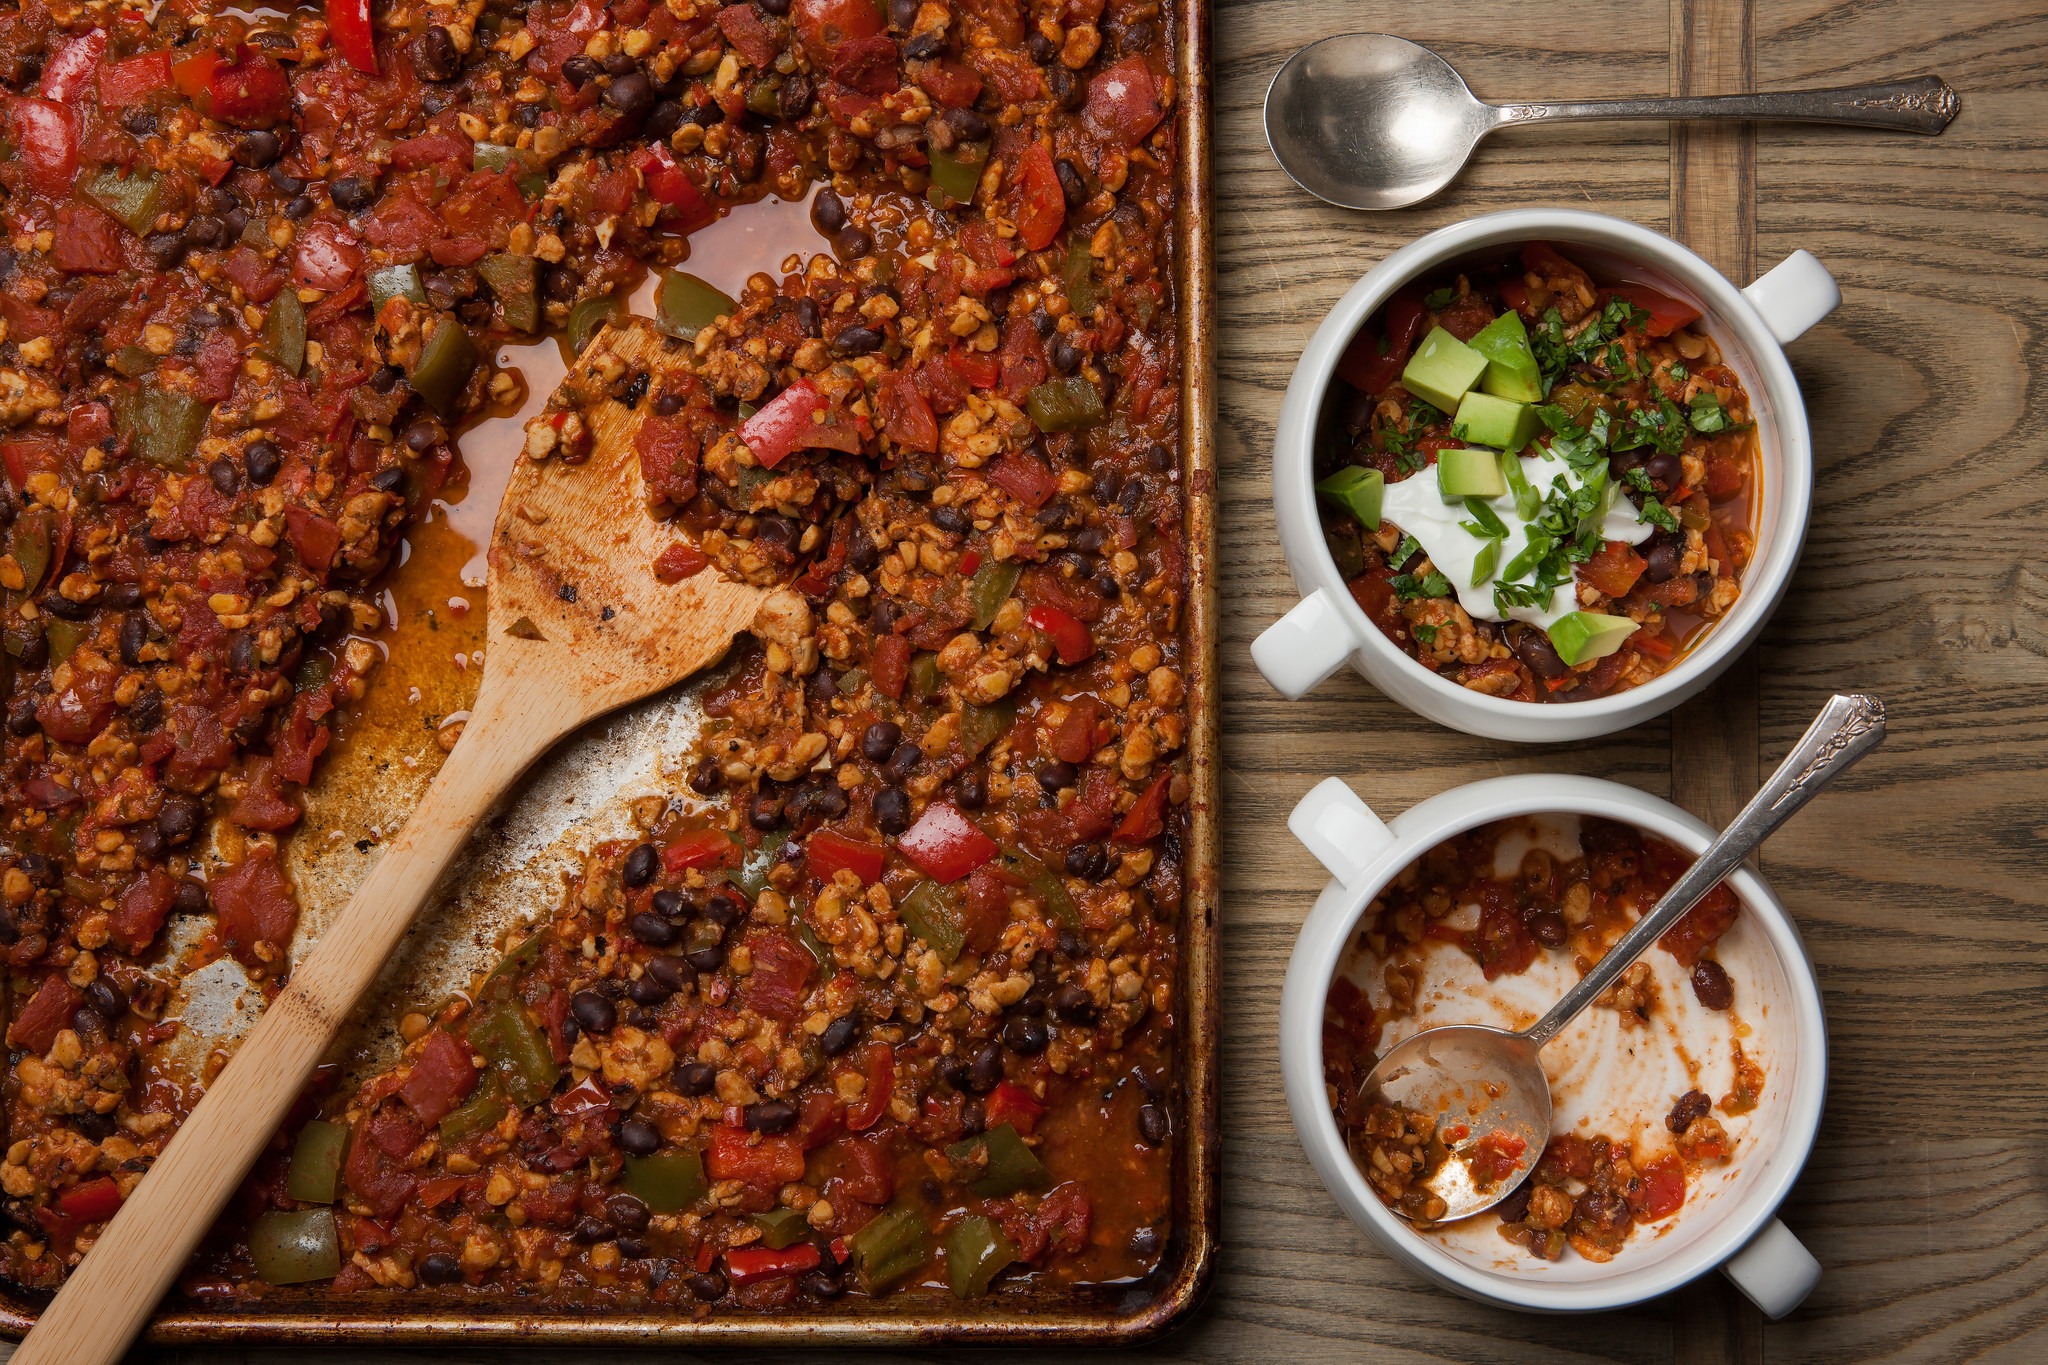 Why make chili in a sheet pan? Flavor.